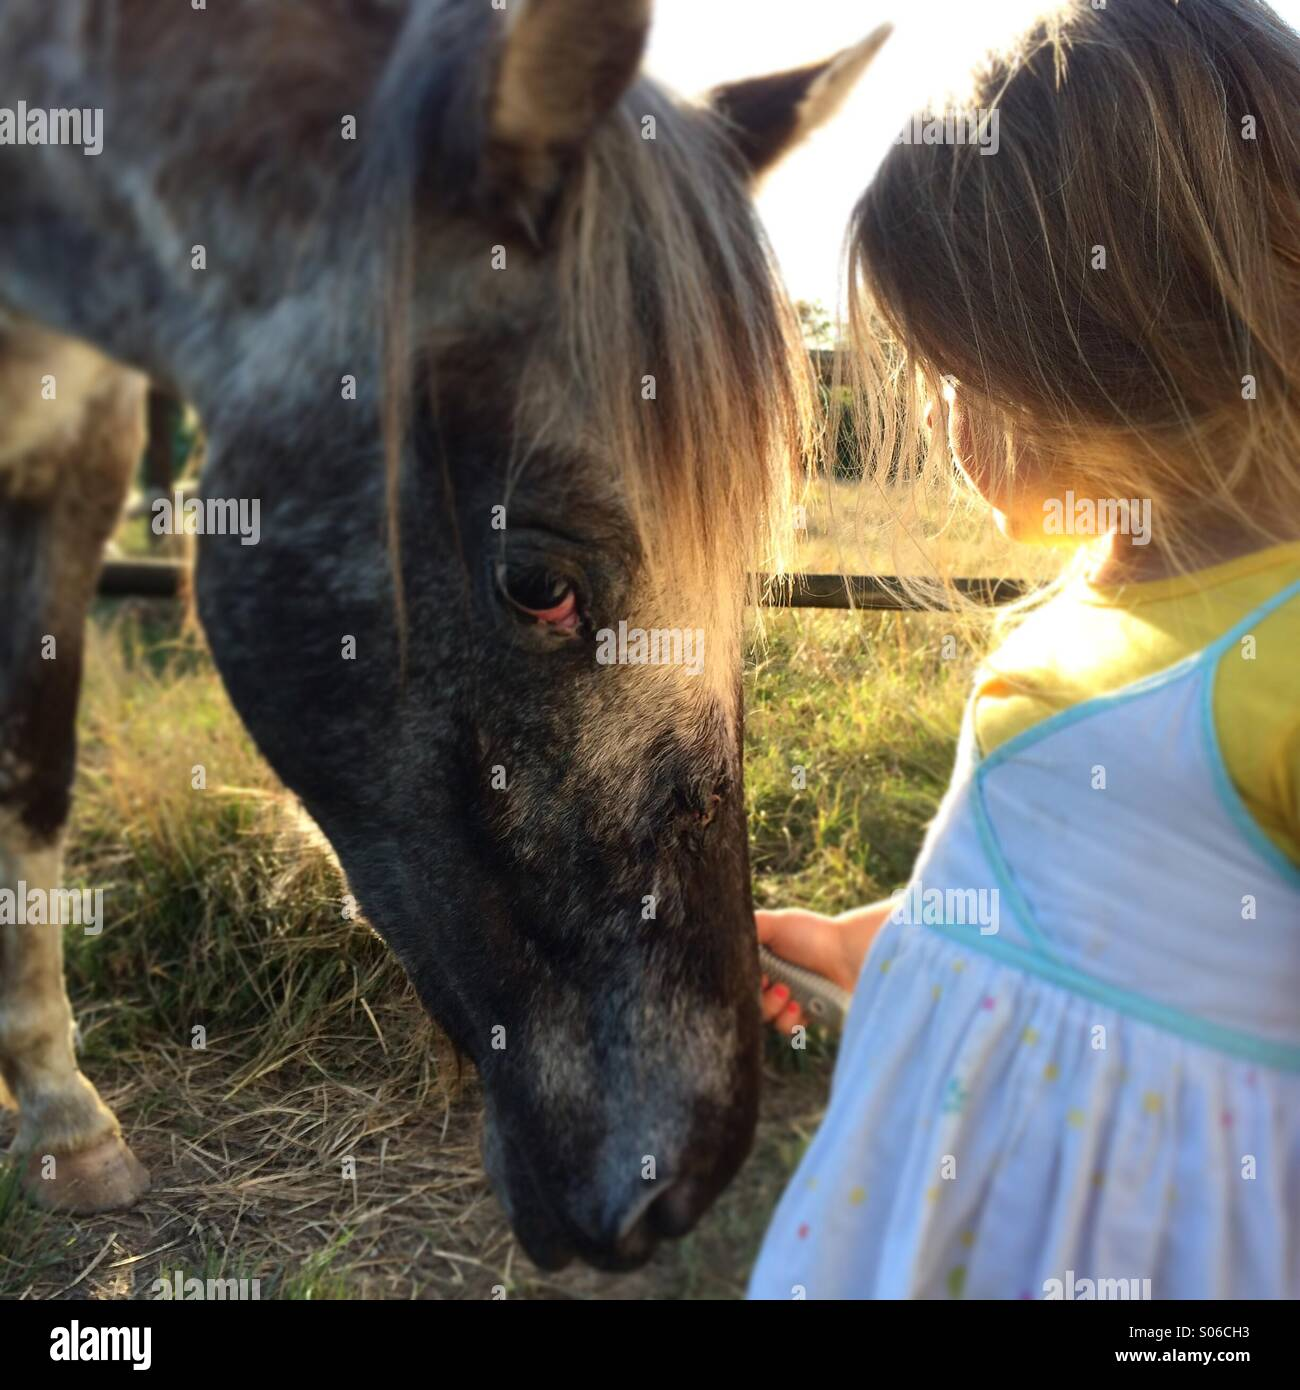 Horse whisperer - Stock Image